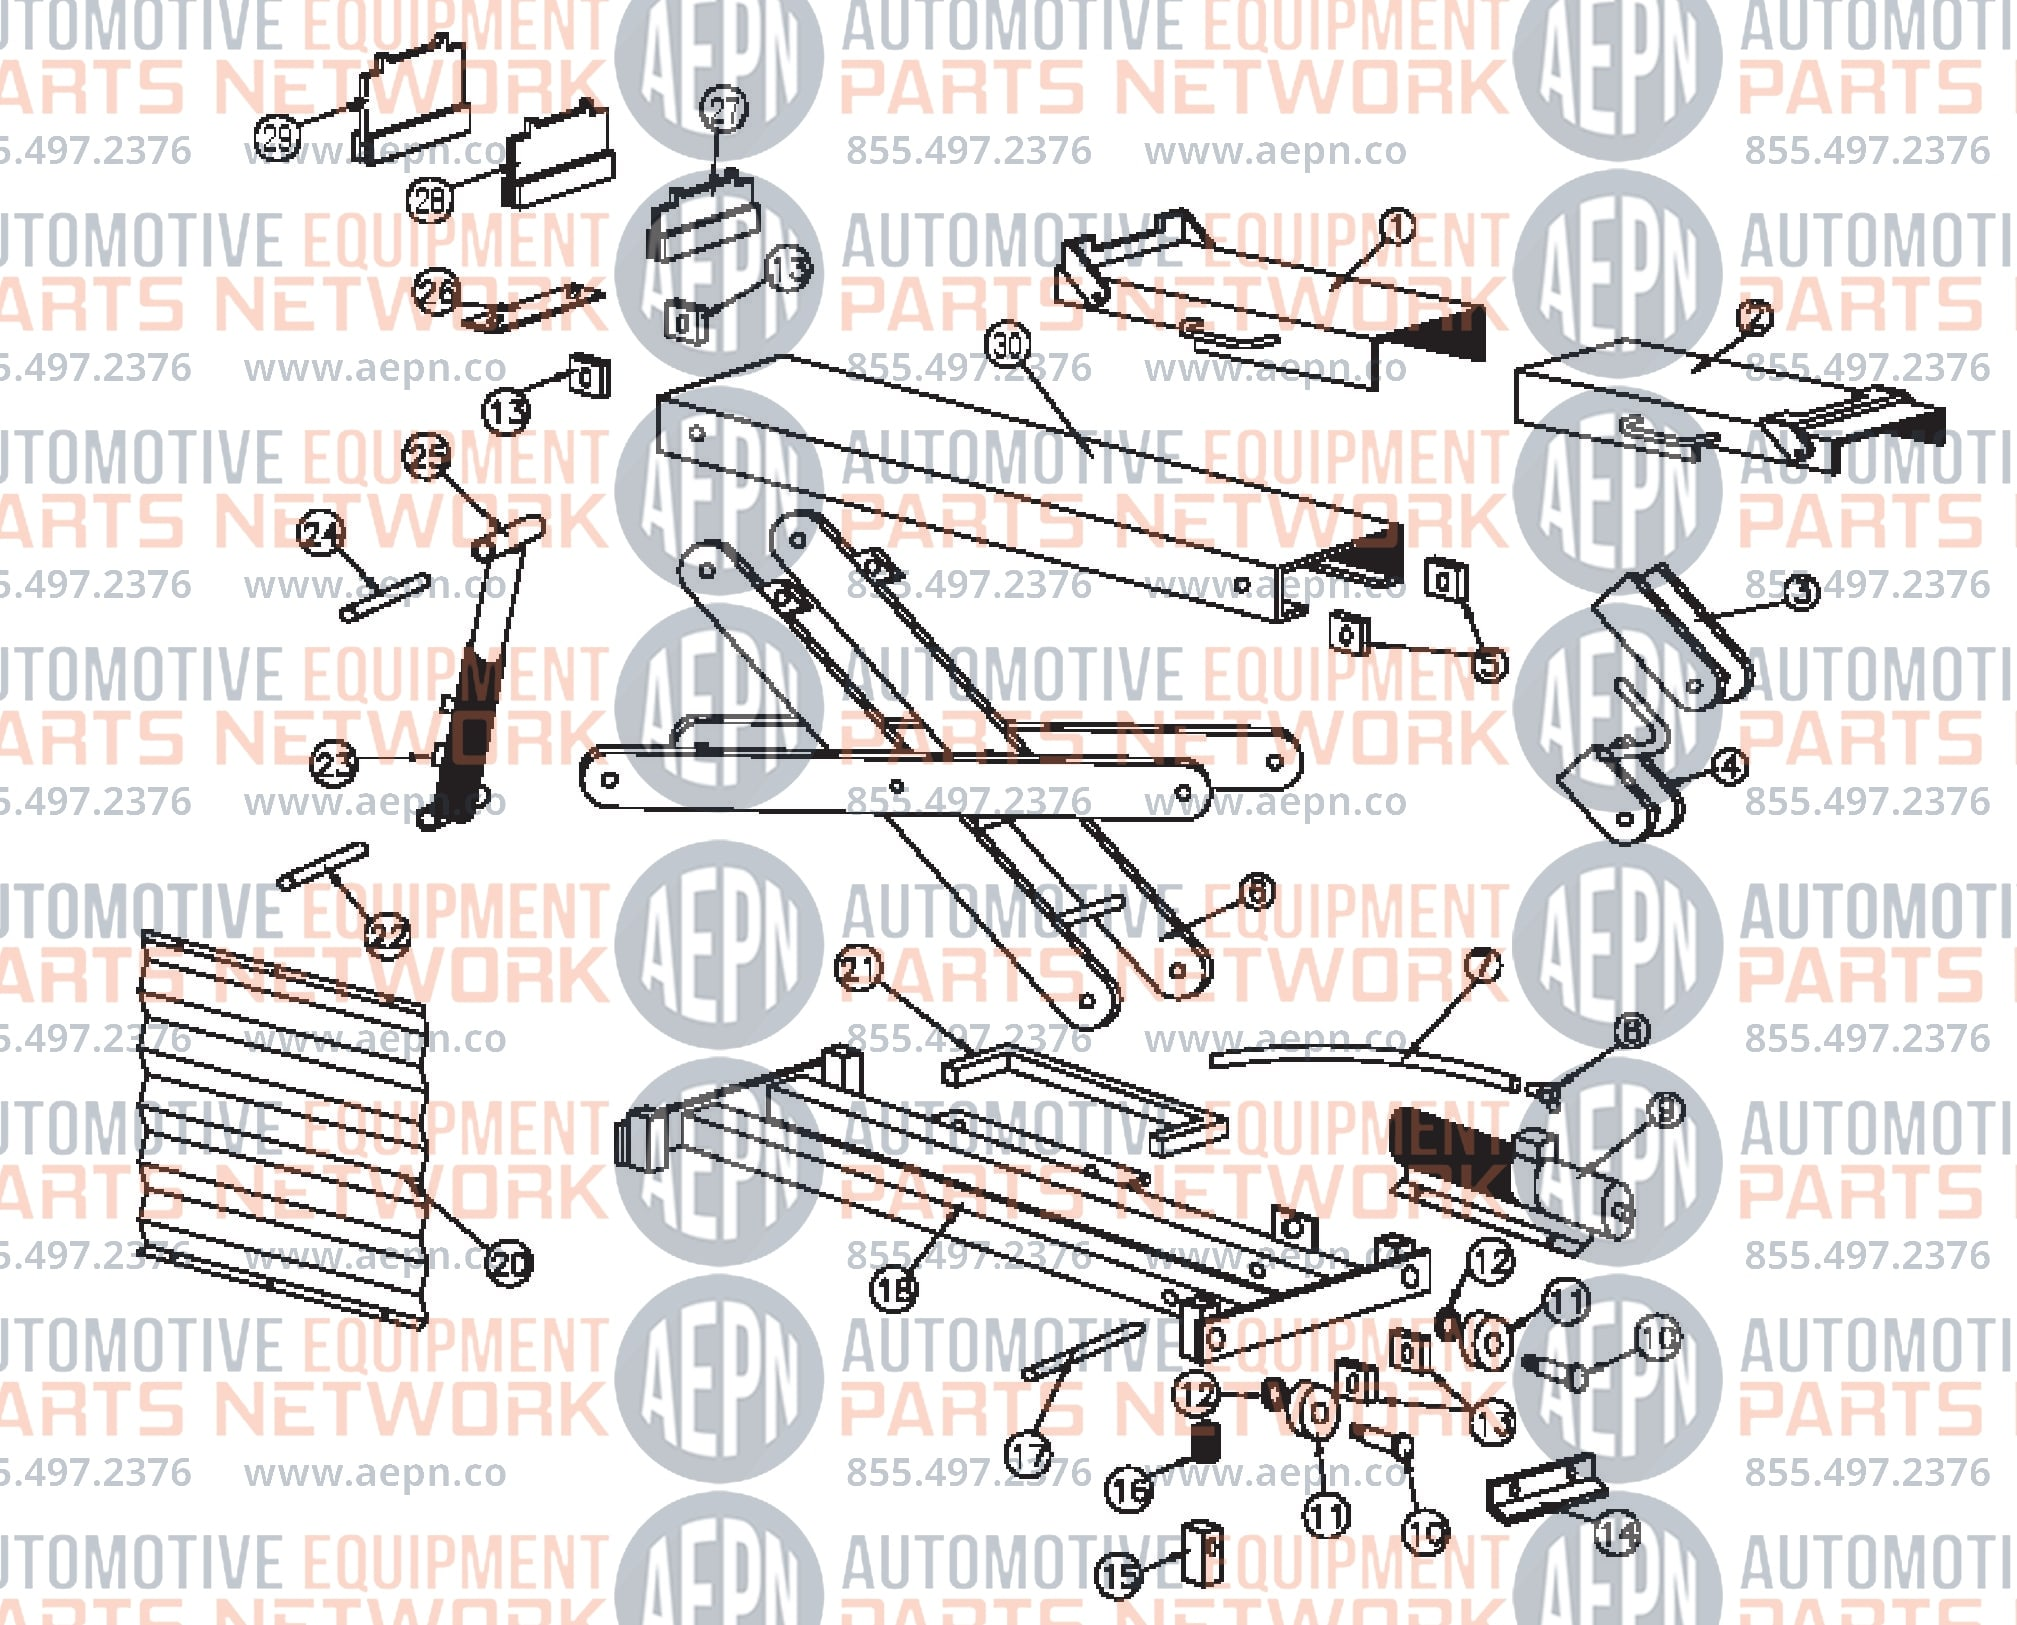 rotary fc5655 parts breakdown 2006 f150 front bumper parts diagram rotary phone parts diagram #28